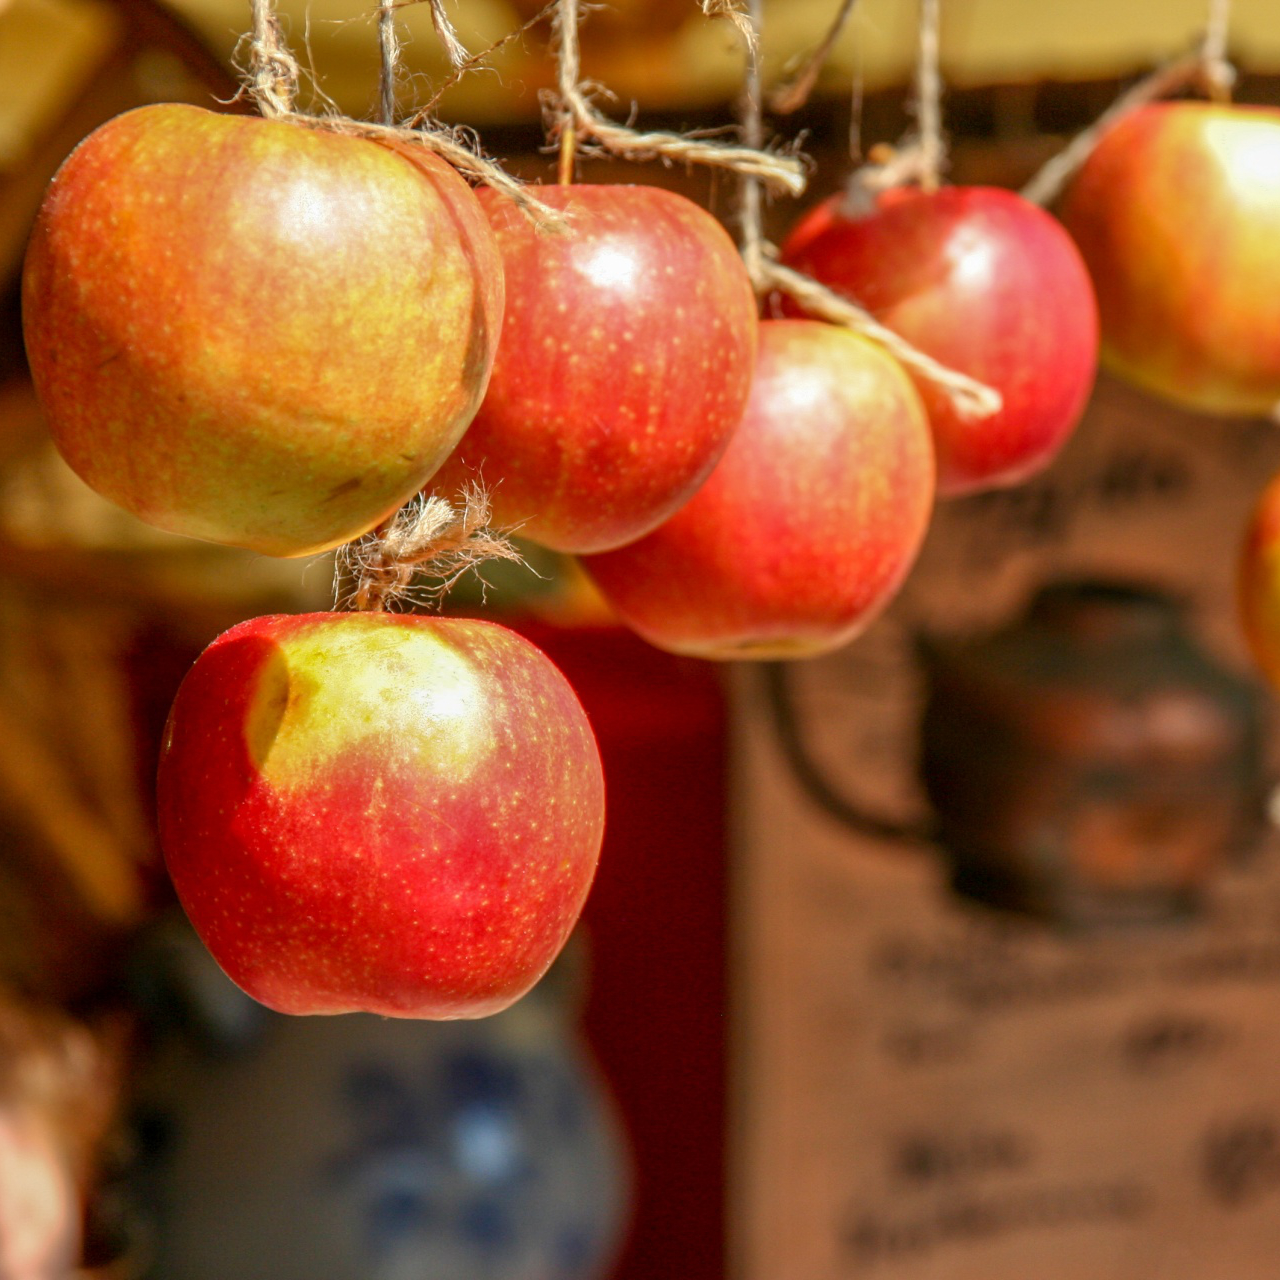 a row of apples hanging by strings